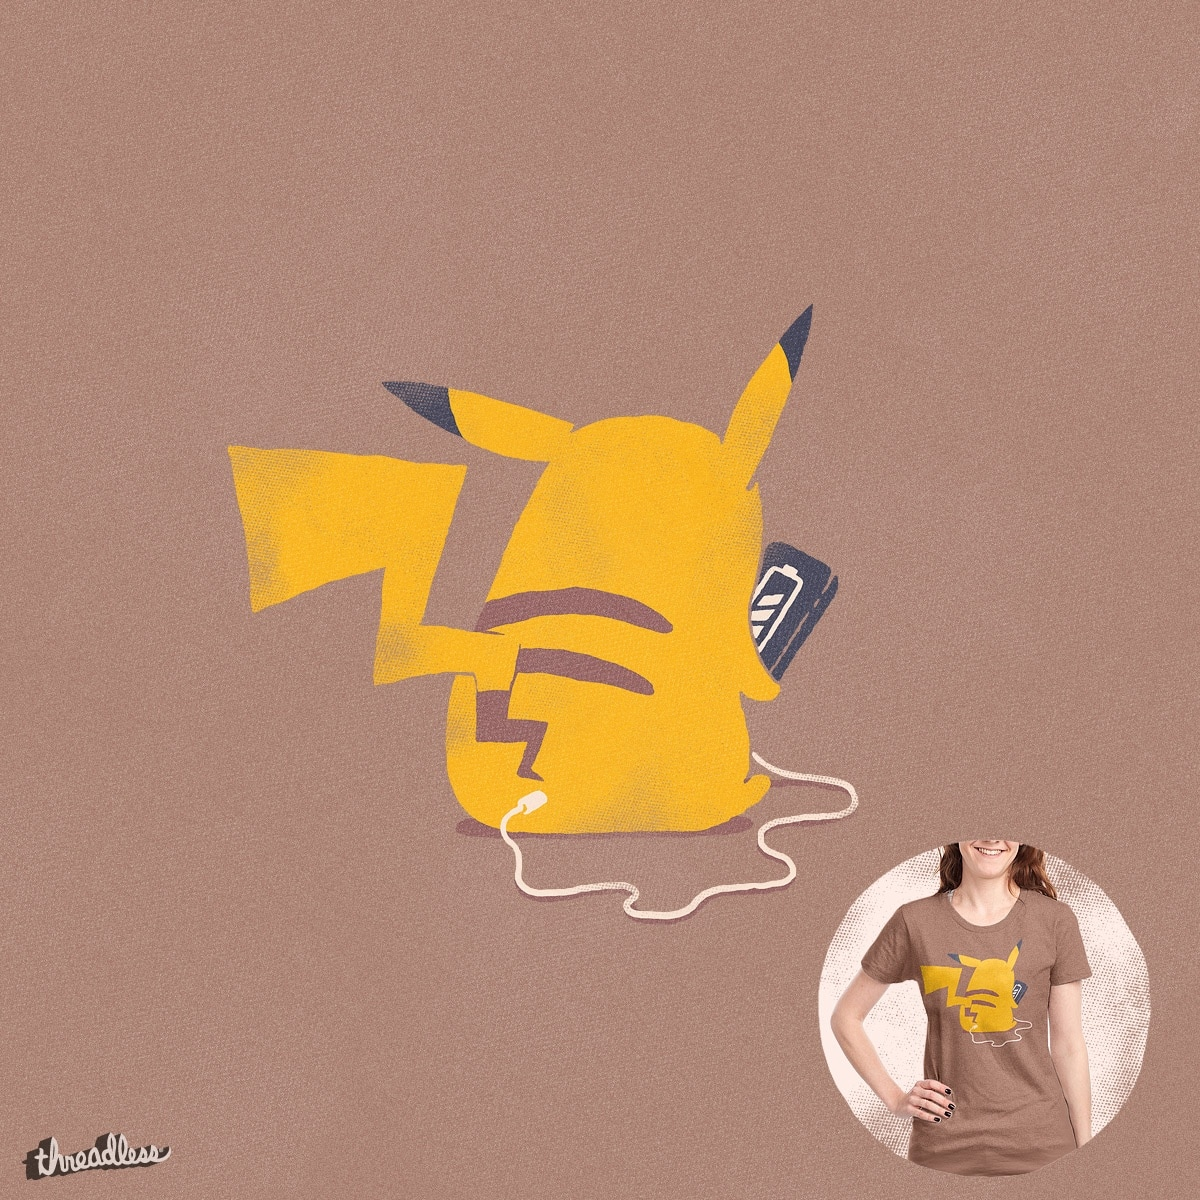 Charger by jameses_x on Threadless